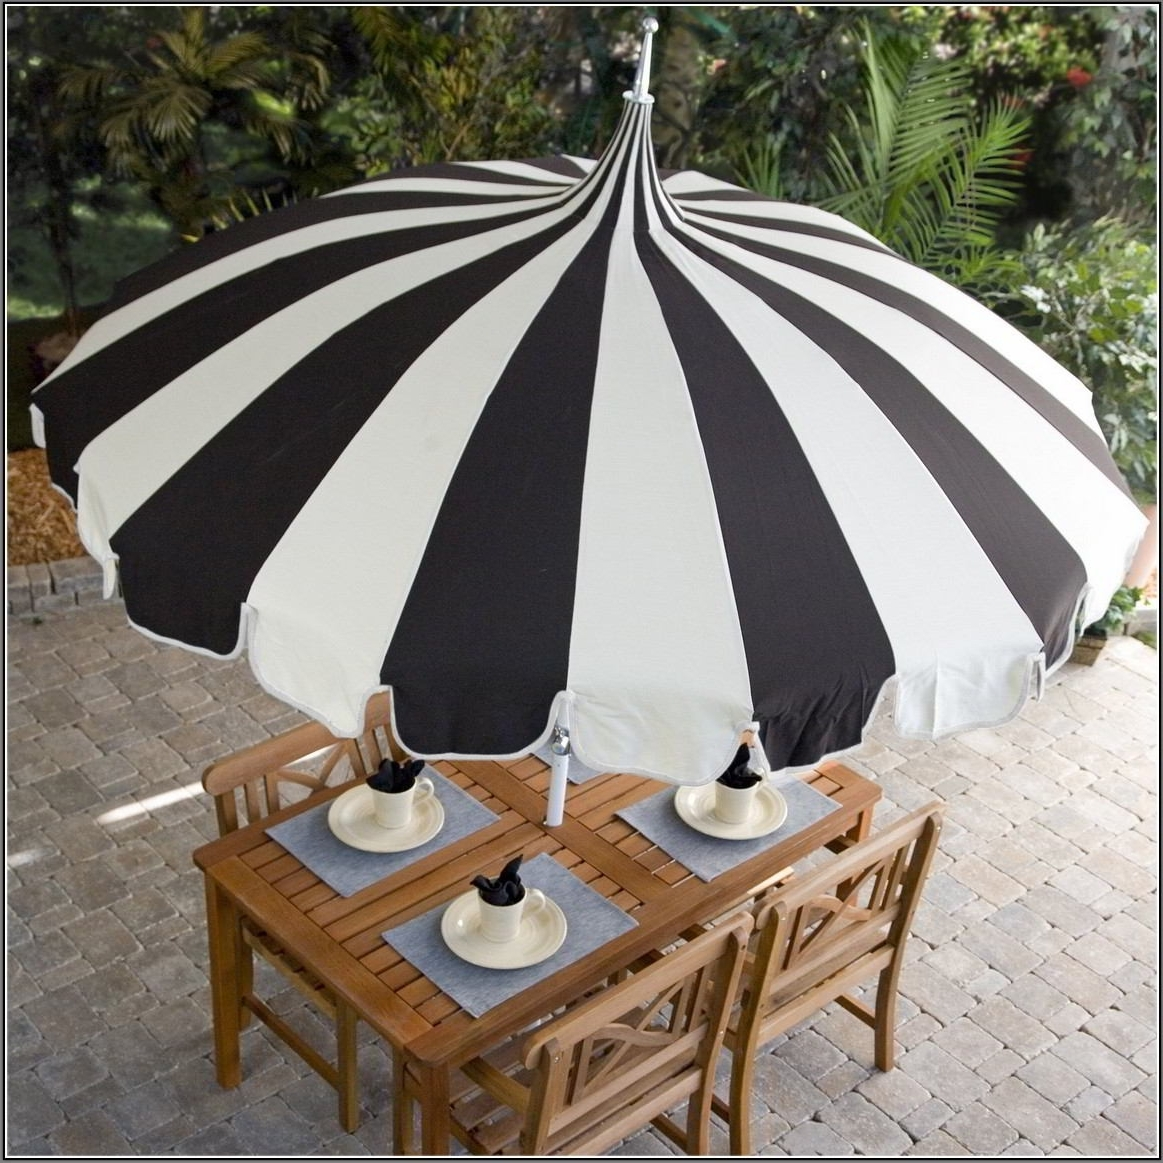 Current Black And White Patio Umbrellas Inside Black And White Garden Patio Umbrellas Decorating (View 10 of 20)